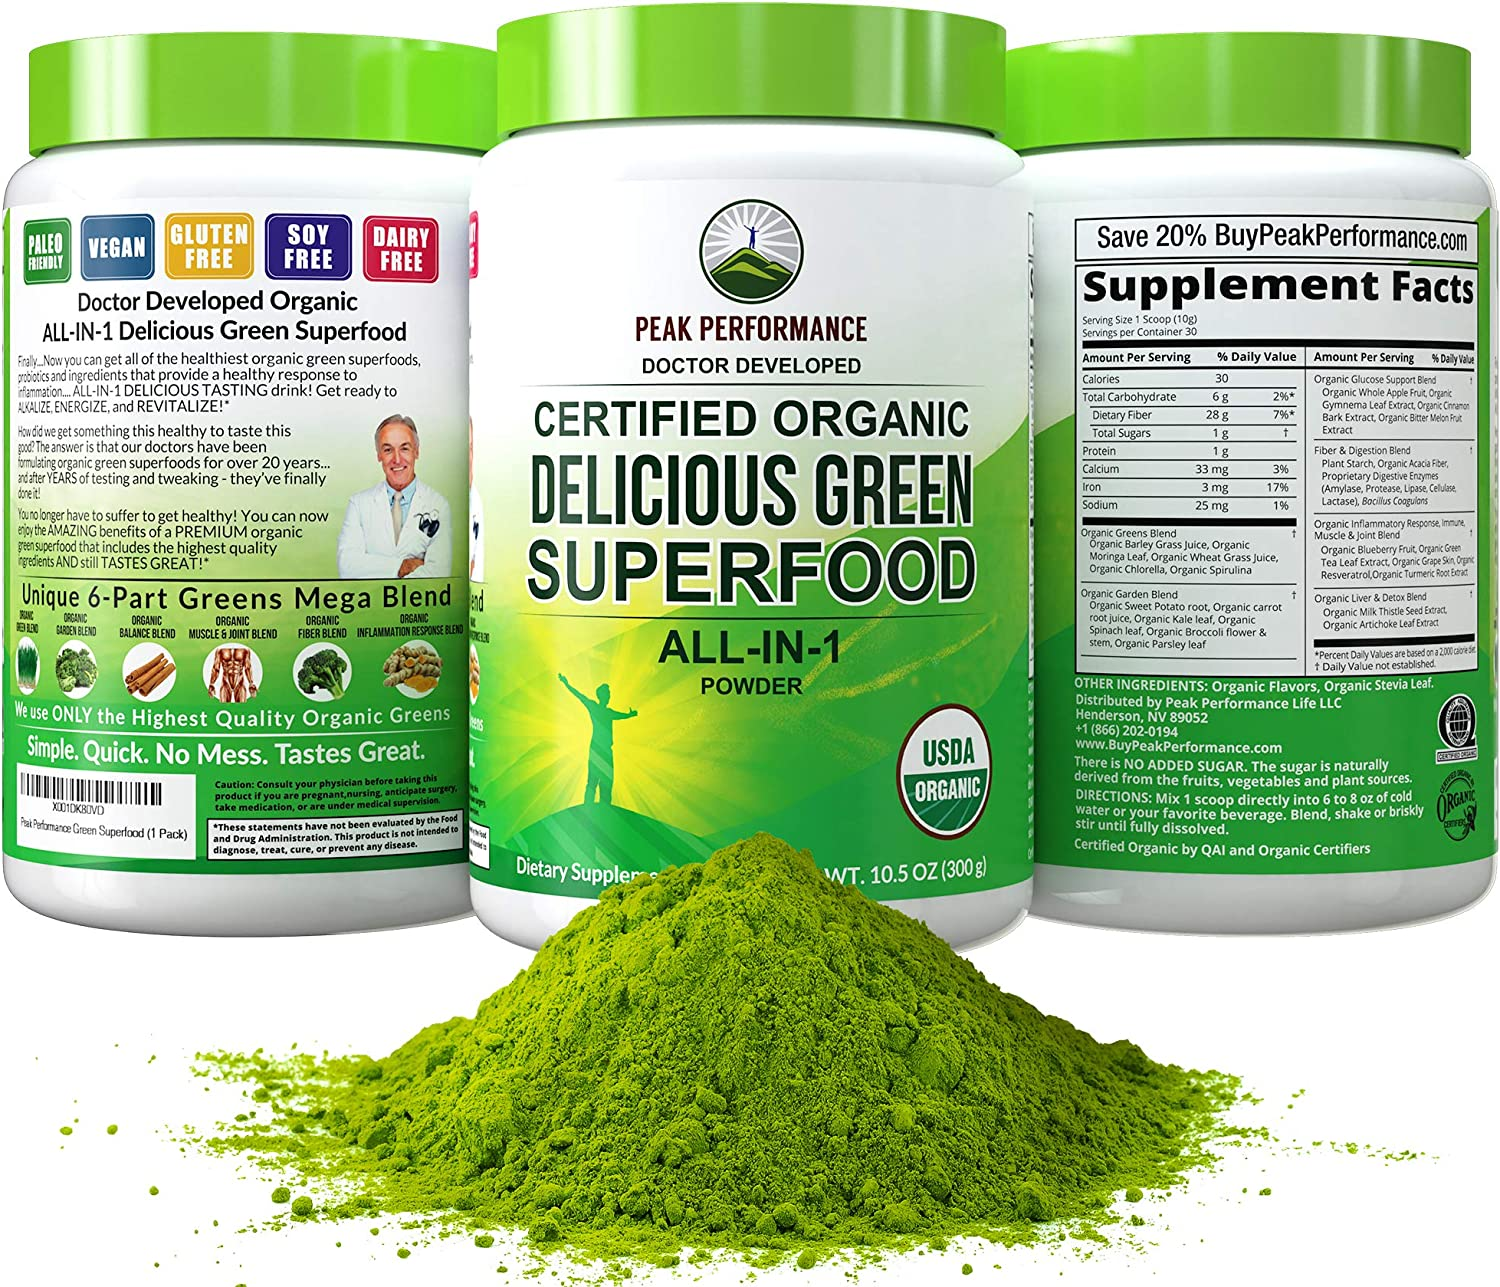 Amazon.com: Peak Performance Organic Greens Superfood Powder. Best Tasting  Organic Green Juice Vegan Super Food with 25+ All Natural Ingredients for  Max Energy and Detox. Spirulina, Spinach, Kale, Probiotics: Health &  Personal